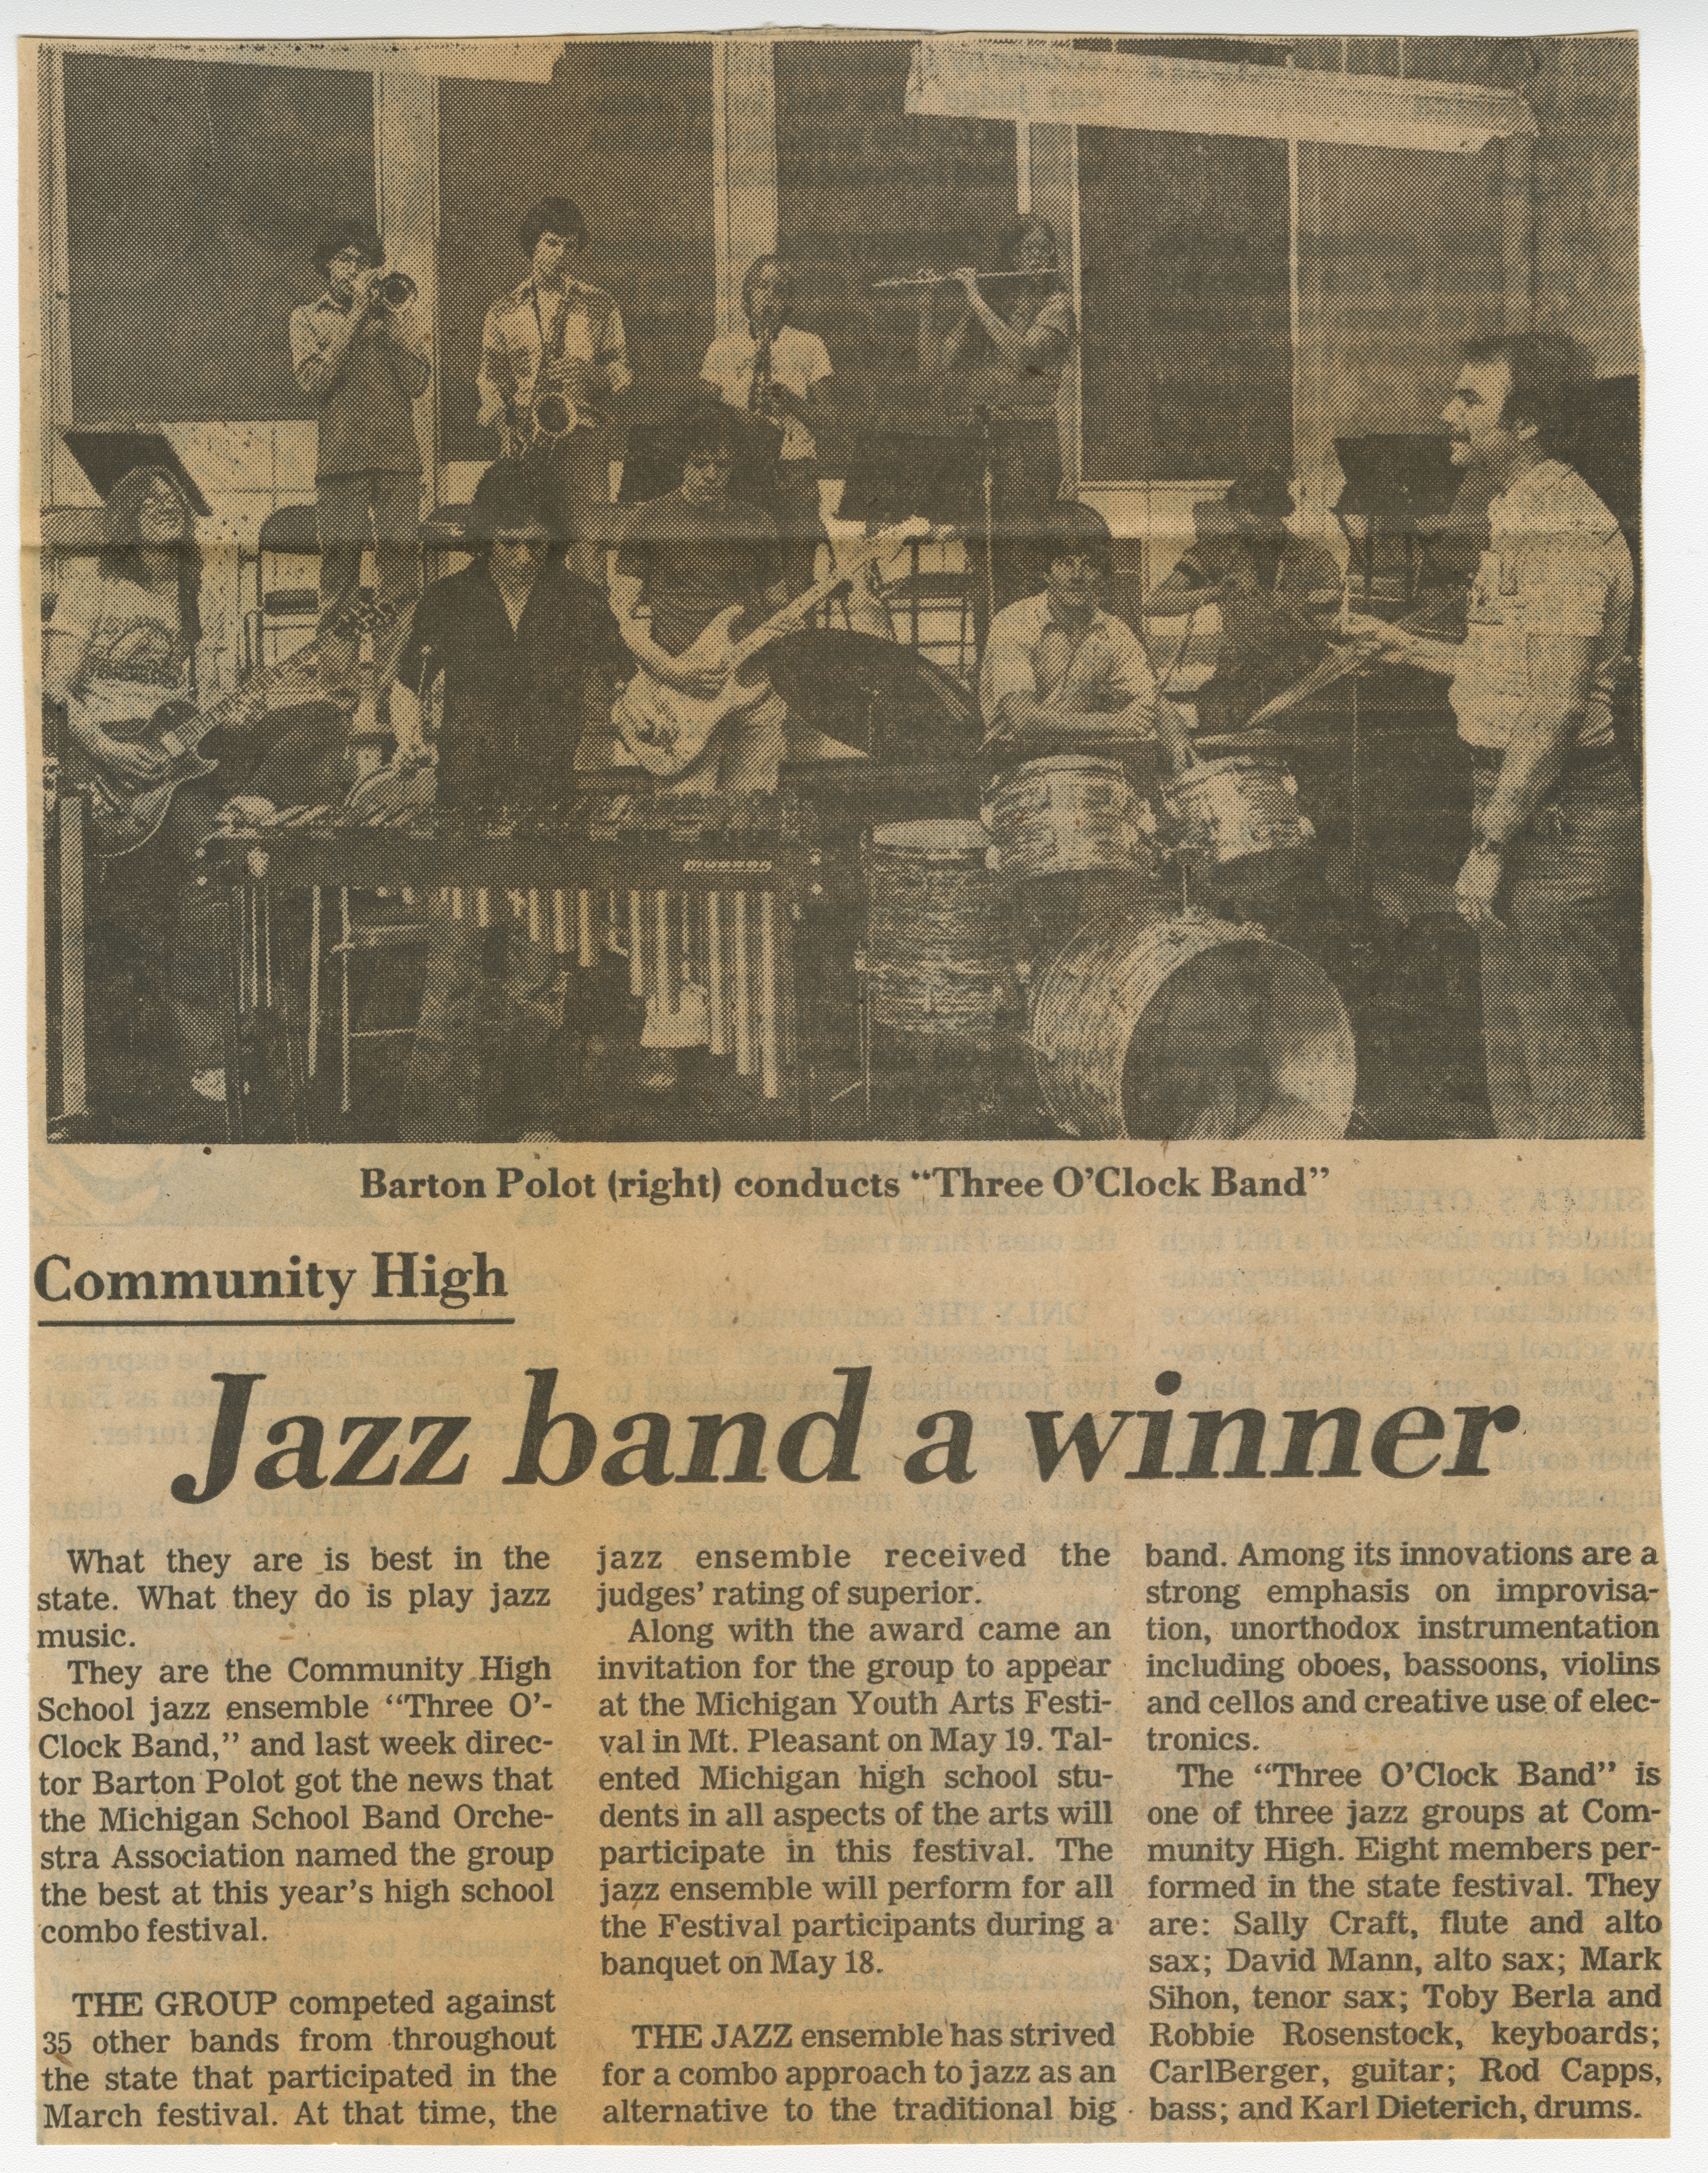 Community High Jazz band a winner image